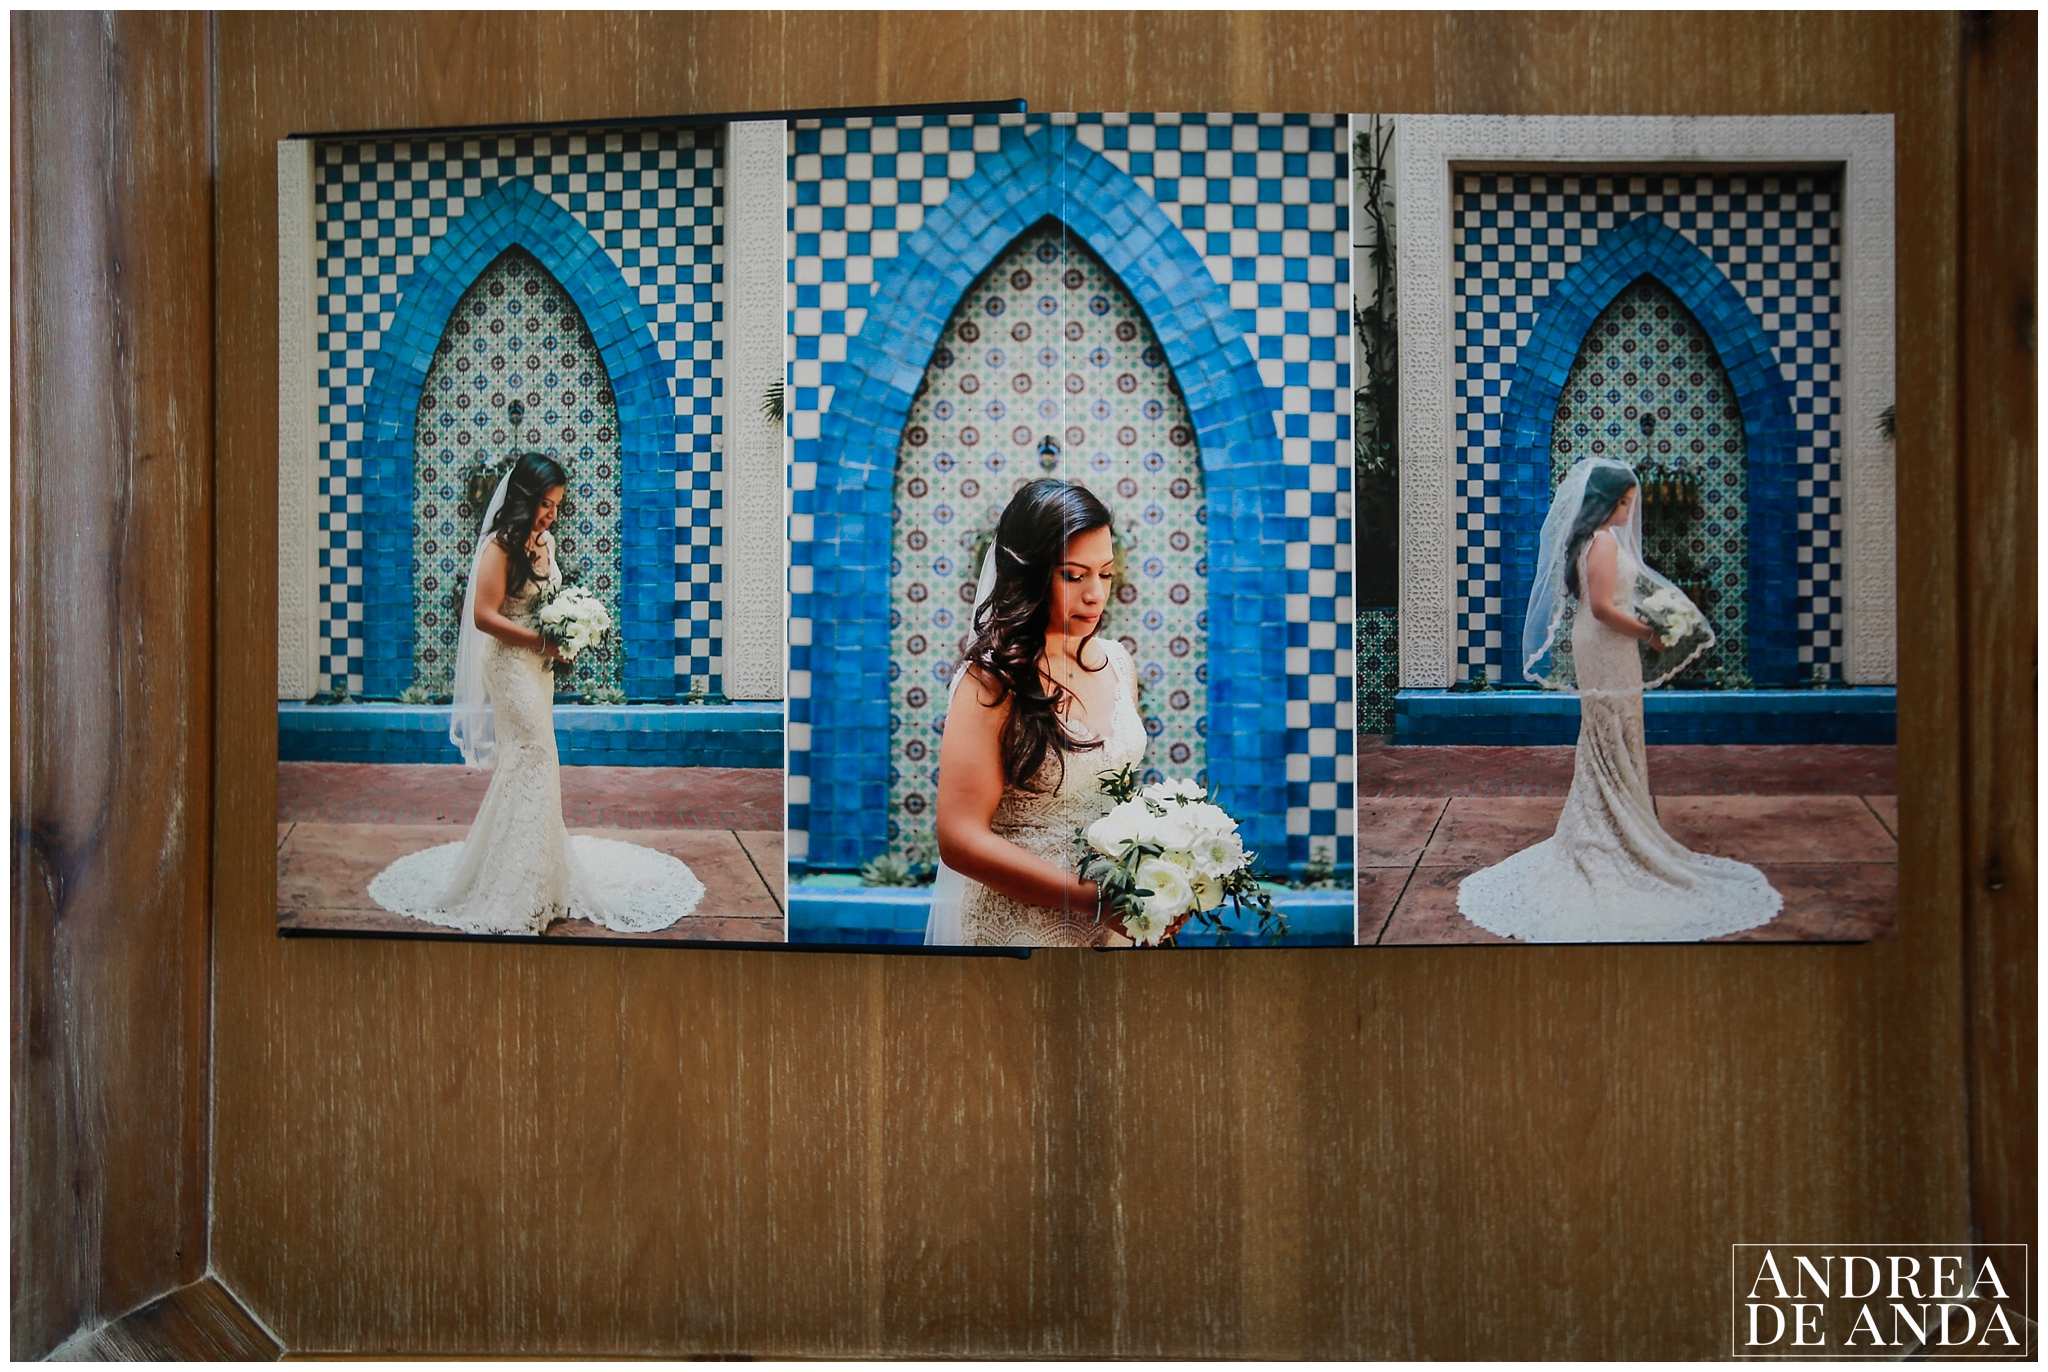 Andrea de Anda Photography_Wedding Album_0005.jpg